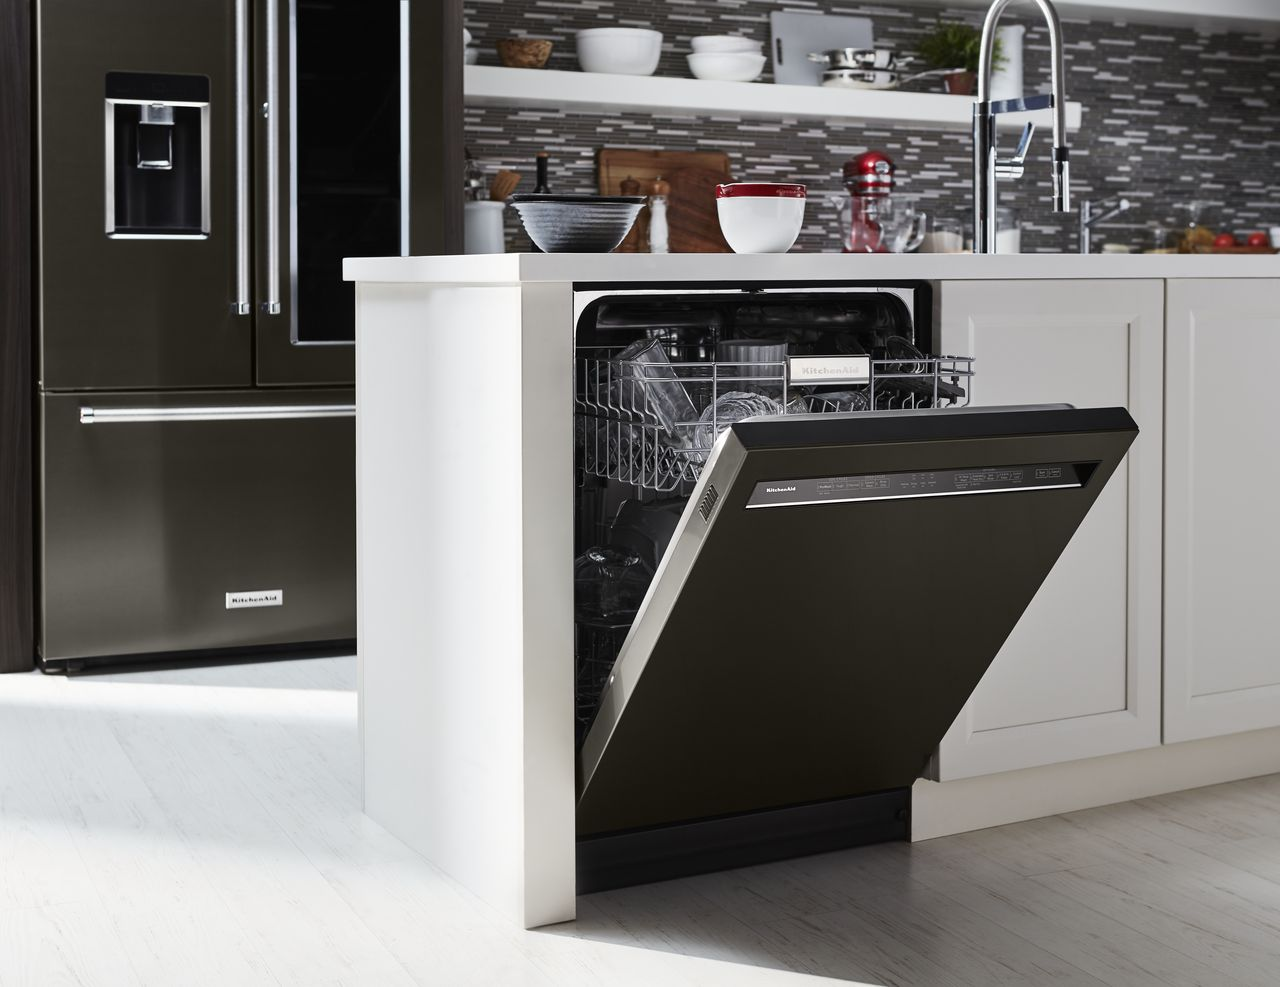 5 Ways To Clean Your Kitchenaid Dishwasher John Plyler Home Center,Keeping Up With The Joneses Examples